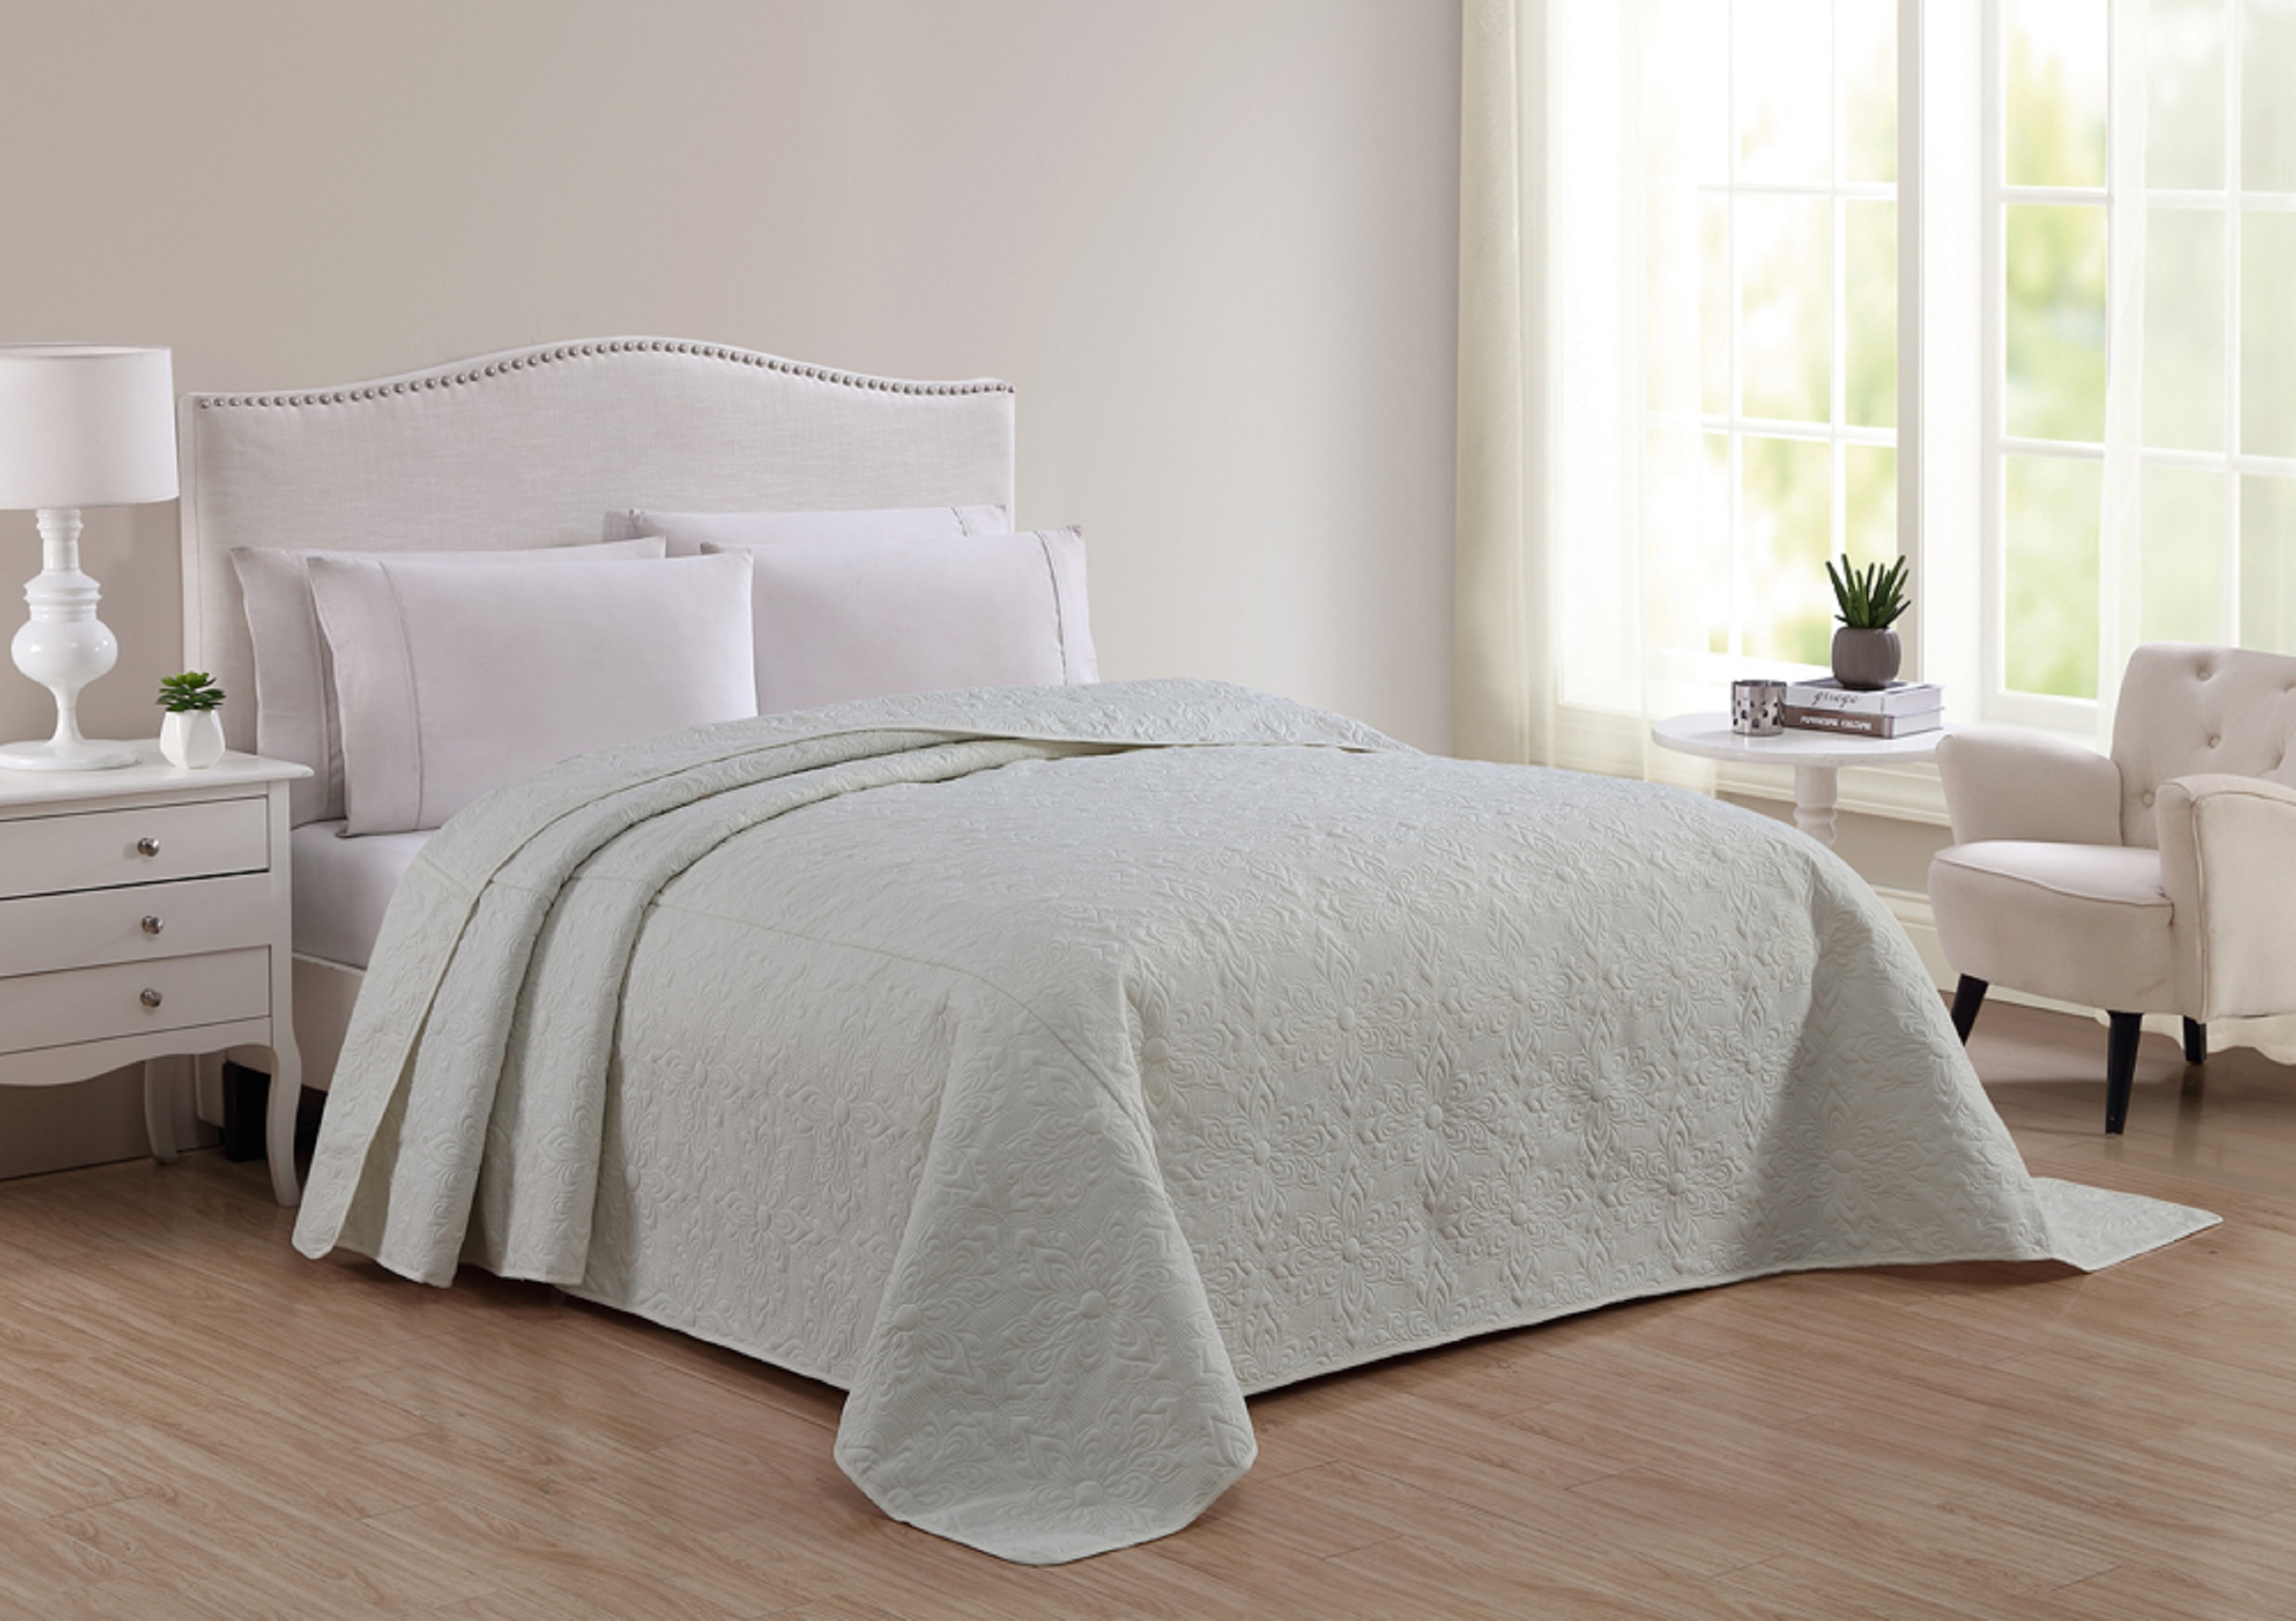 Cannon Solid Ivory Pinsonic Bedspread